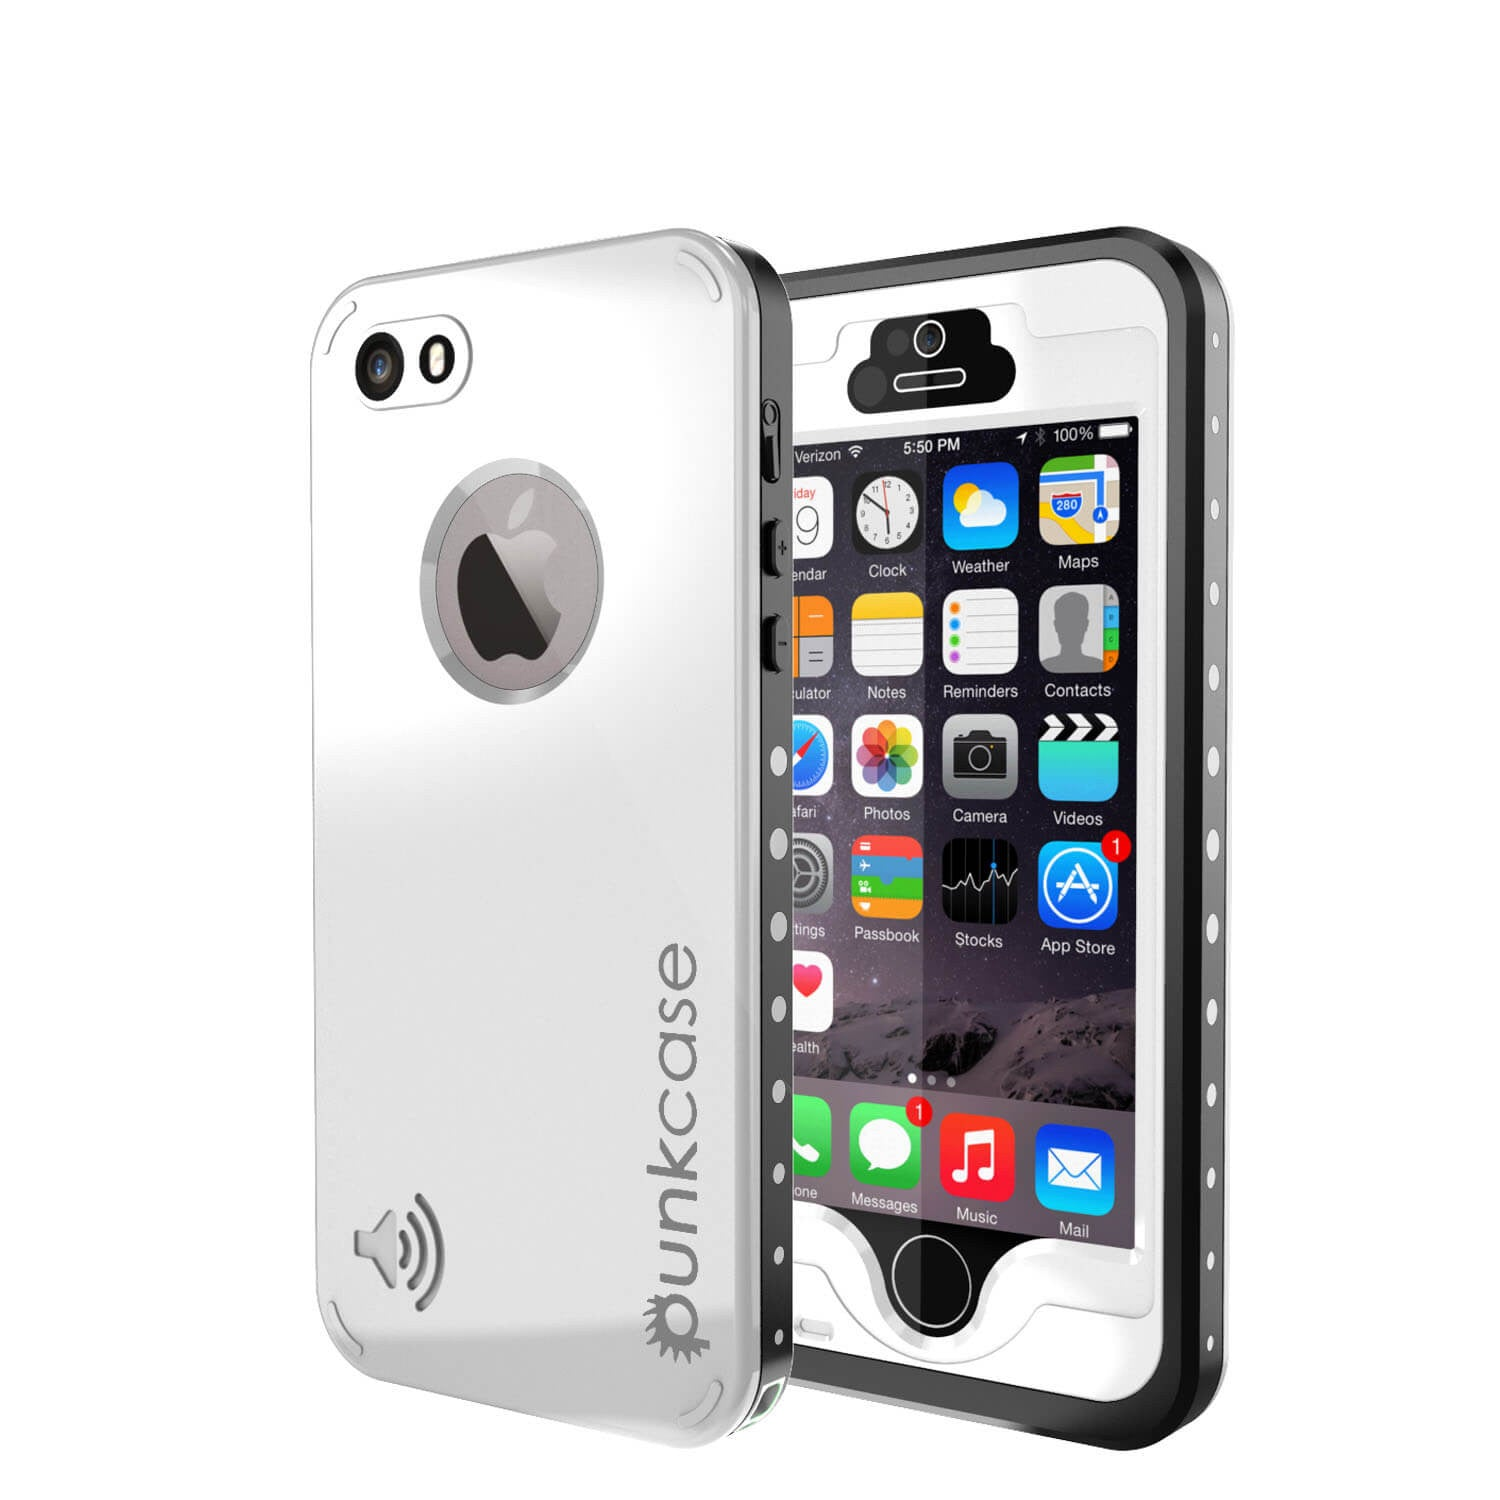 iPhone 5S/5 Waterproof Case, PunkCase StudStar White Case Water/Shock/Dirt Proof | Lifetime Warranty